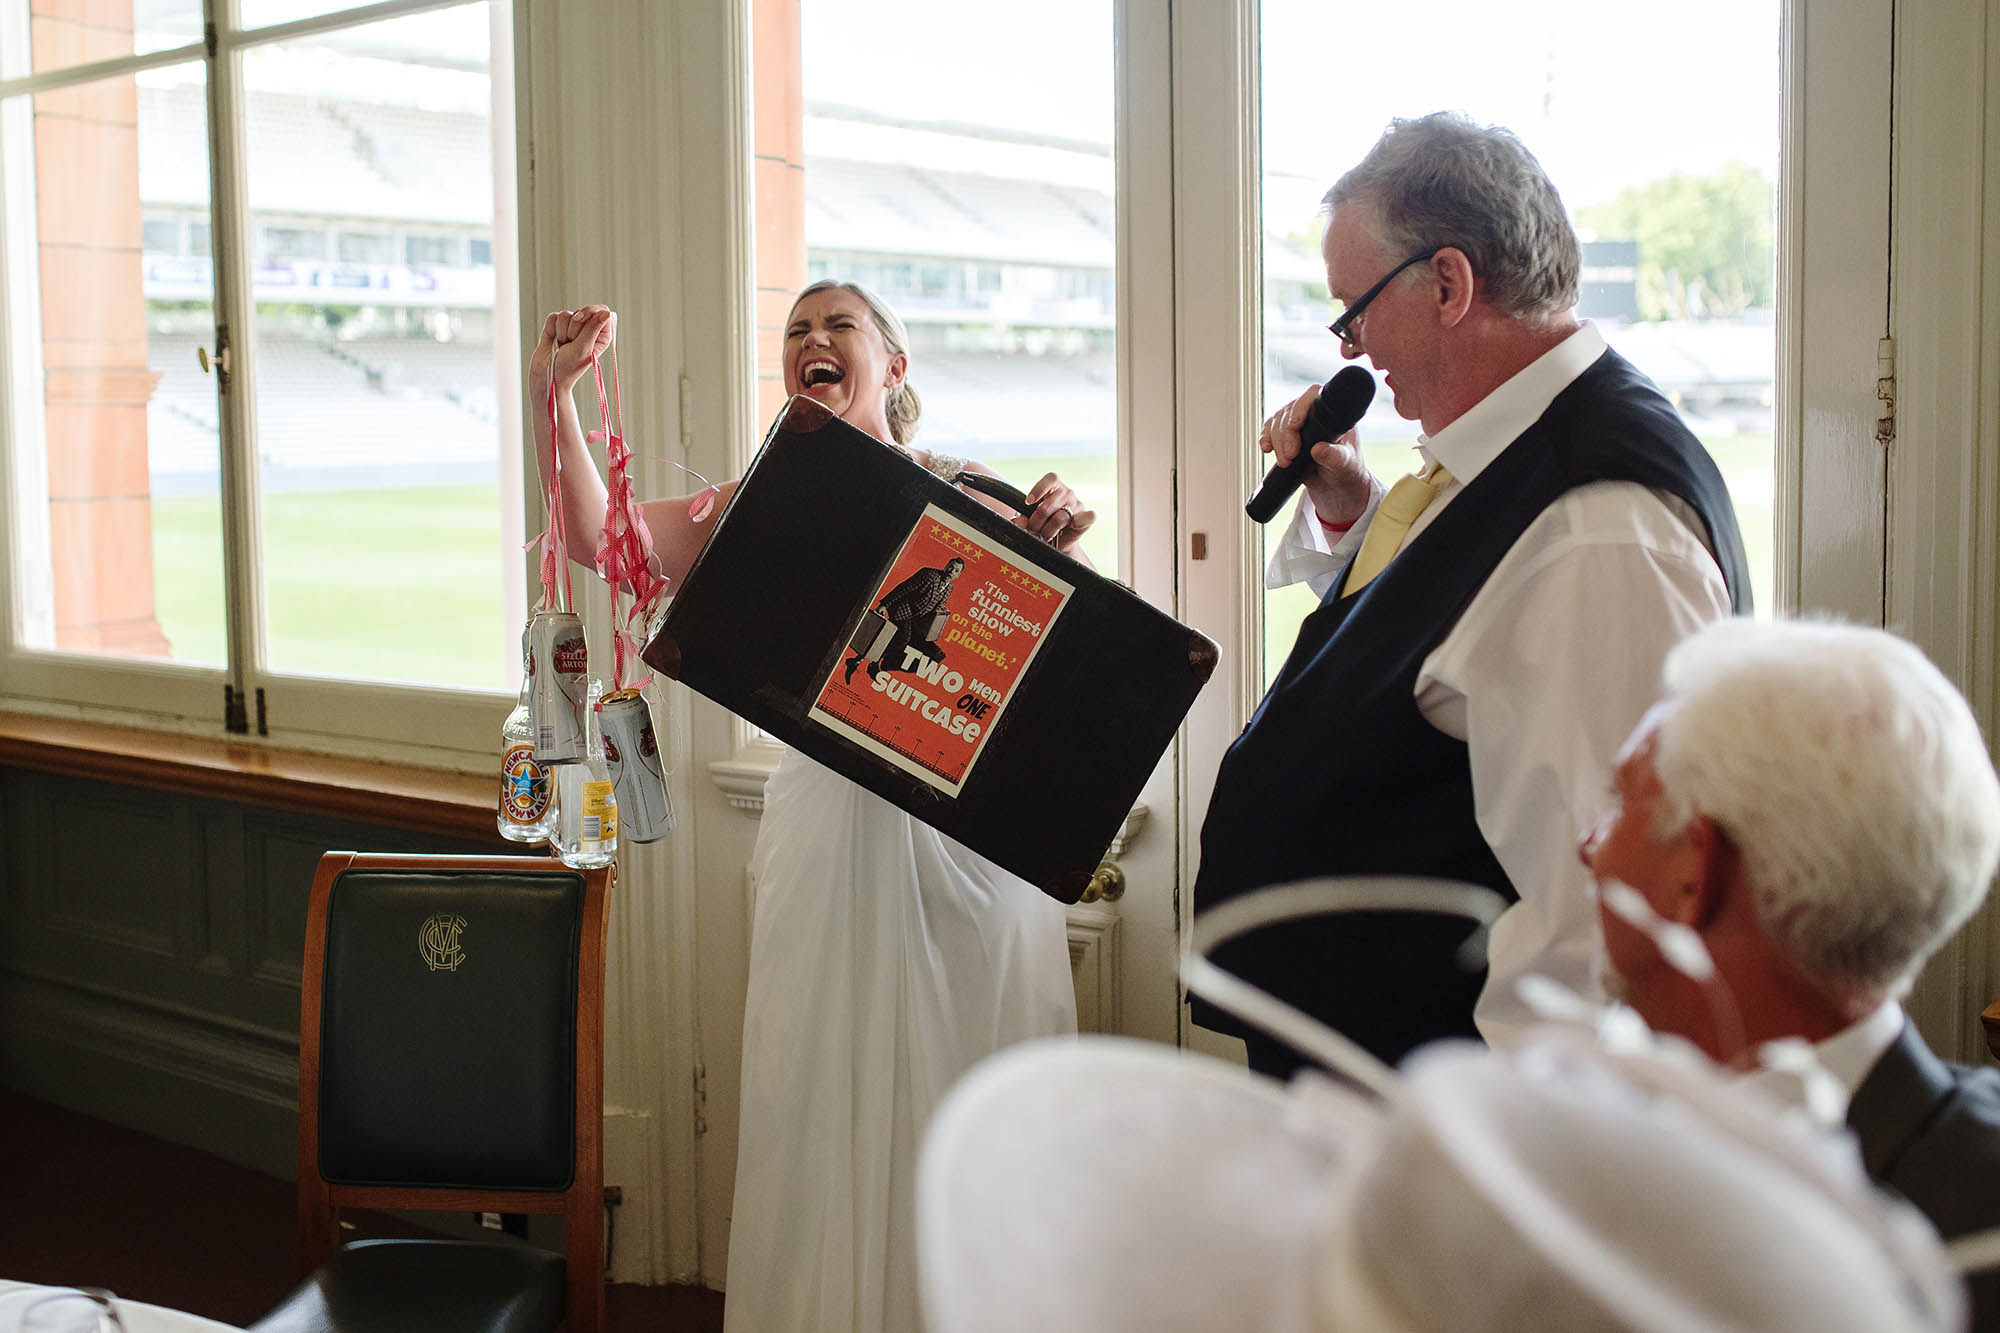 Helen and Ian's London wedding at Lord's Cricket Ground - early highlights collection